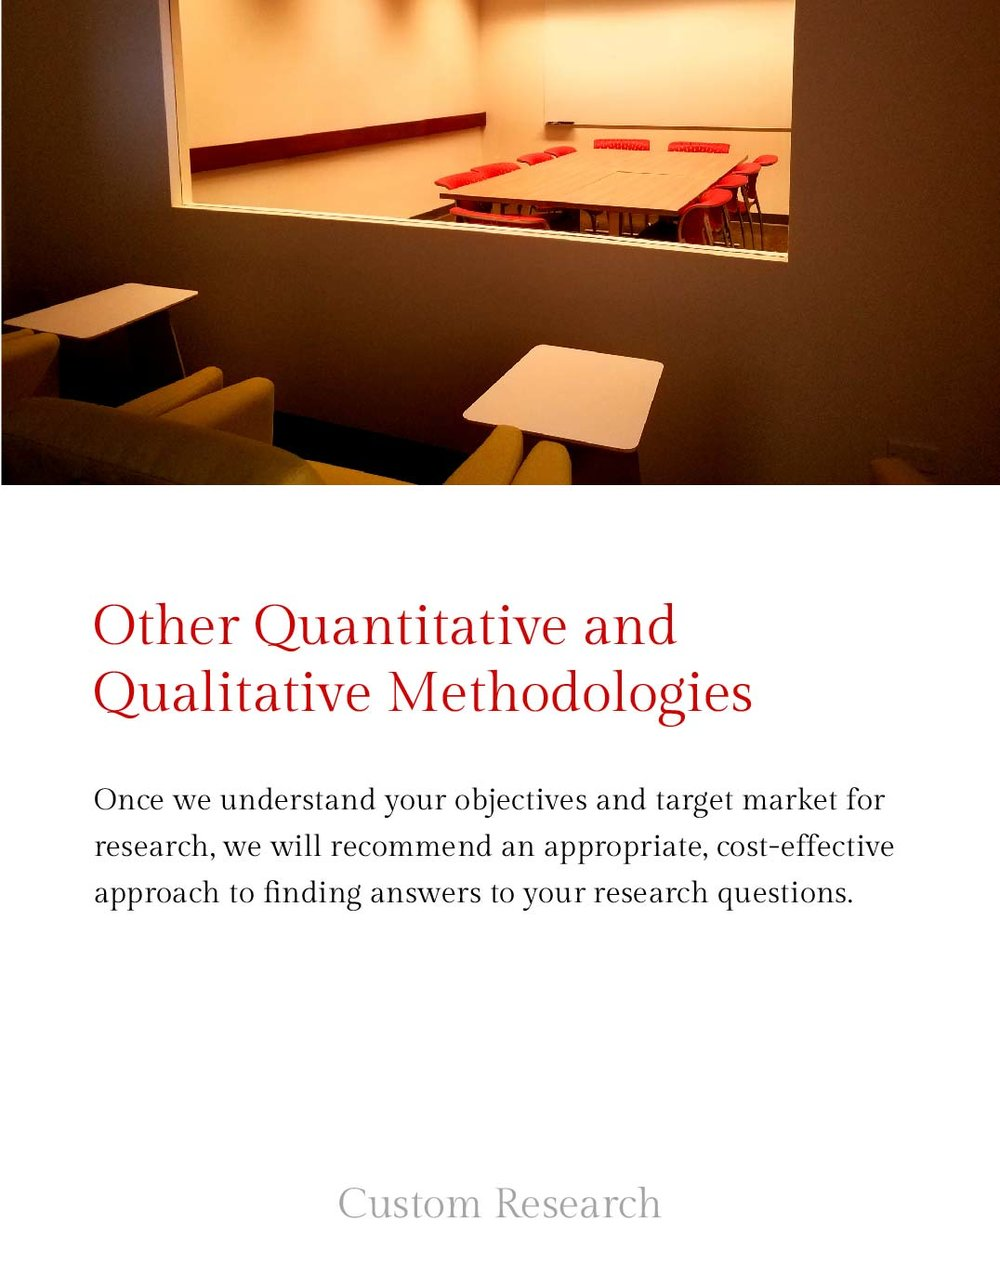 Other Quantitavtive and Qualitative Methodologies